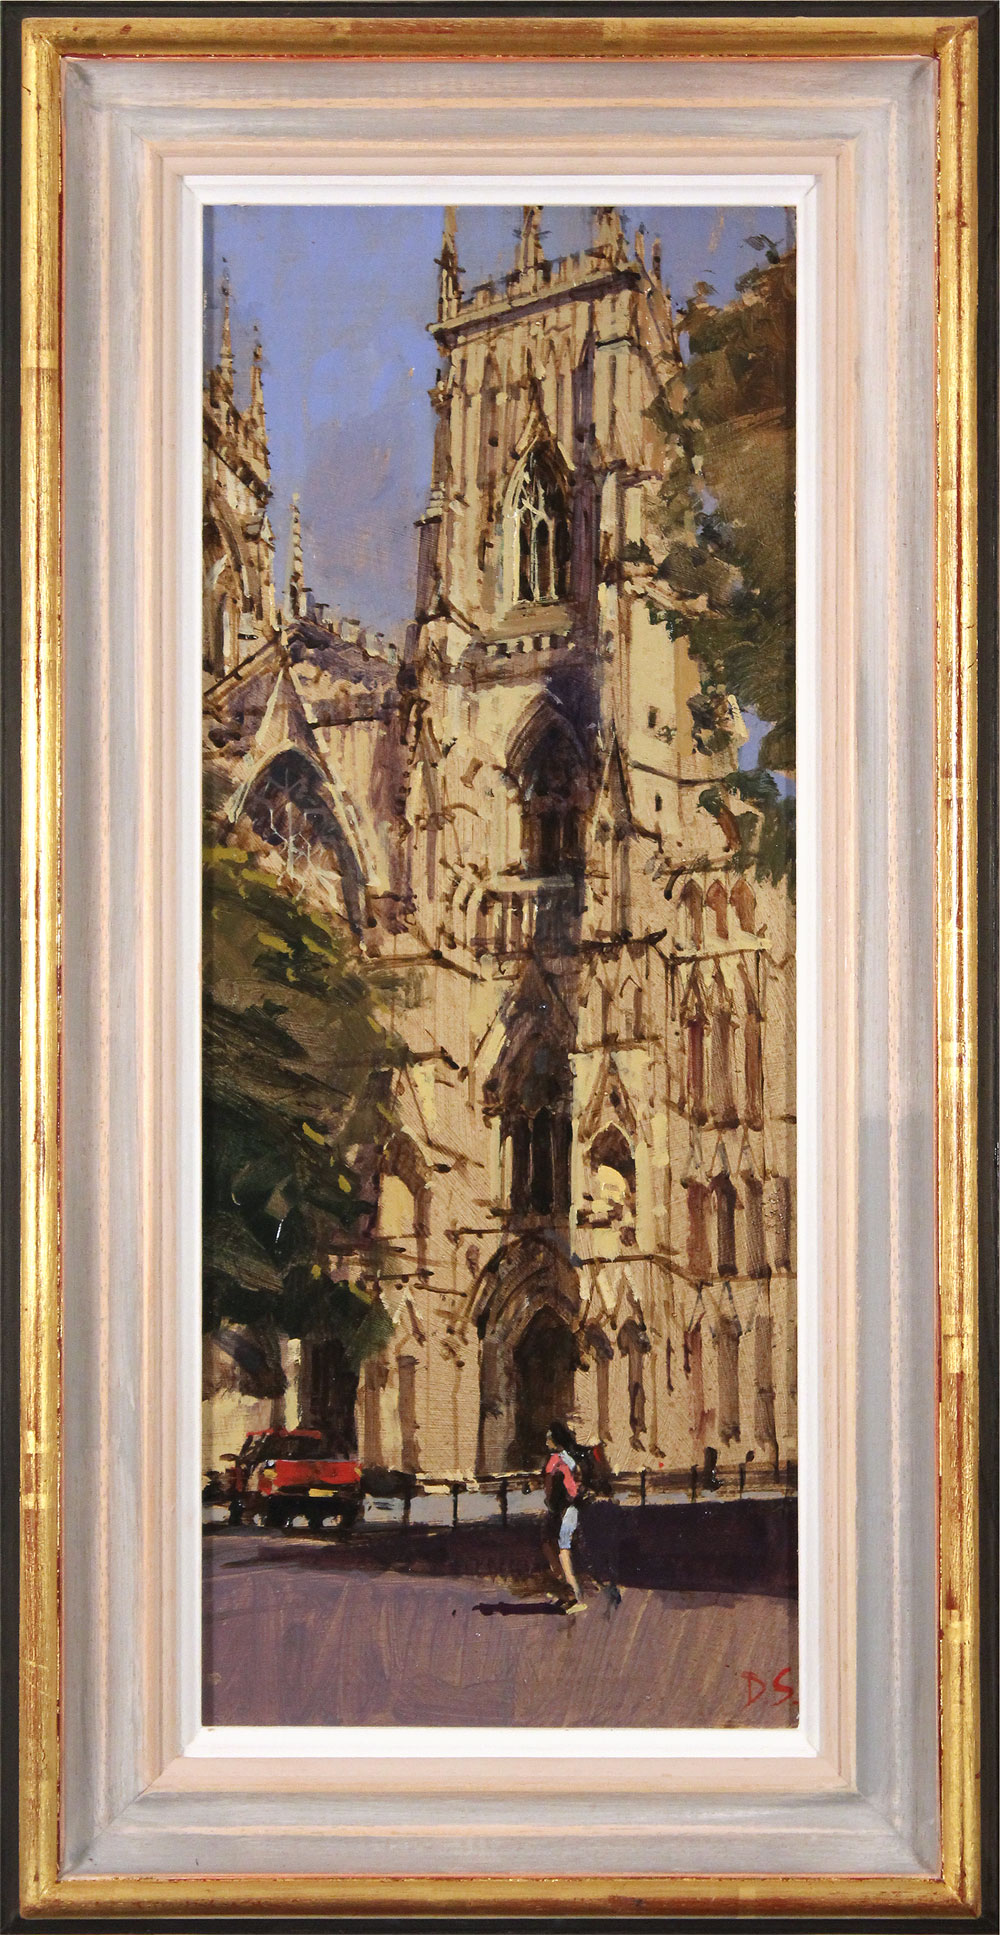 David Sawyer, RBA, Original oil painting on panel, The Red Truck, York Minster. Click to enlarge